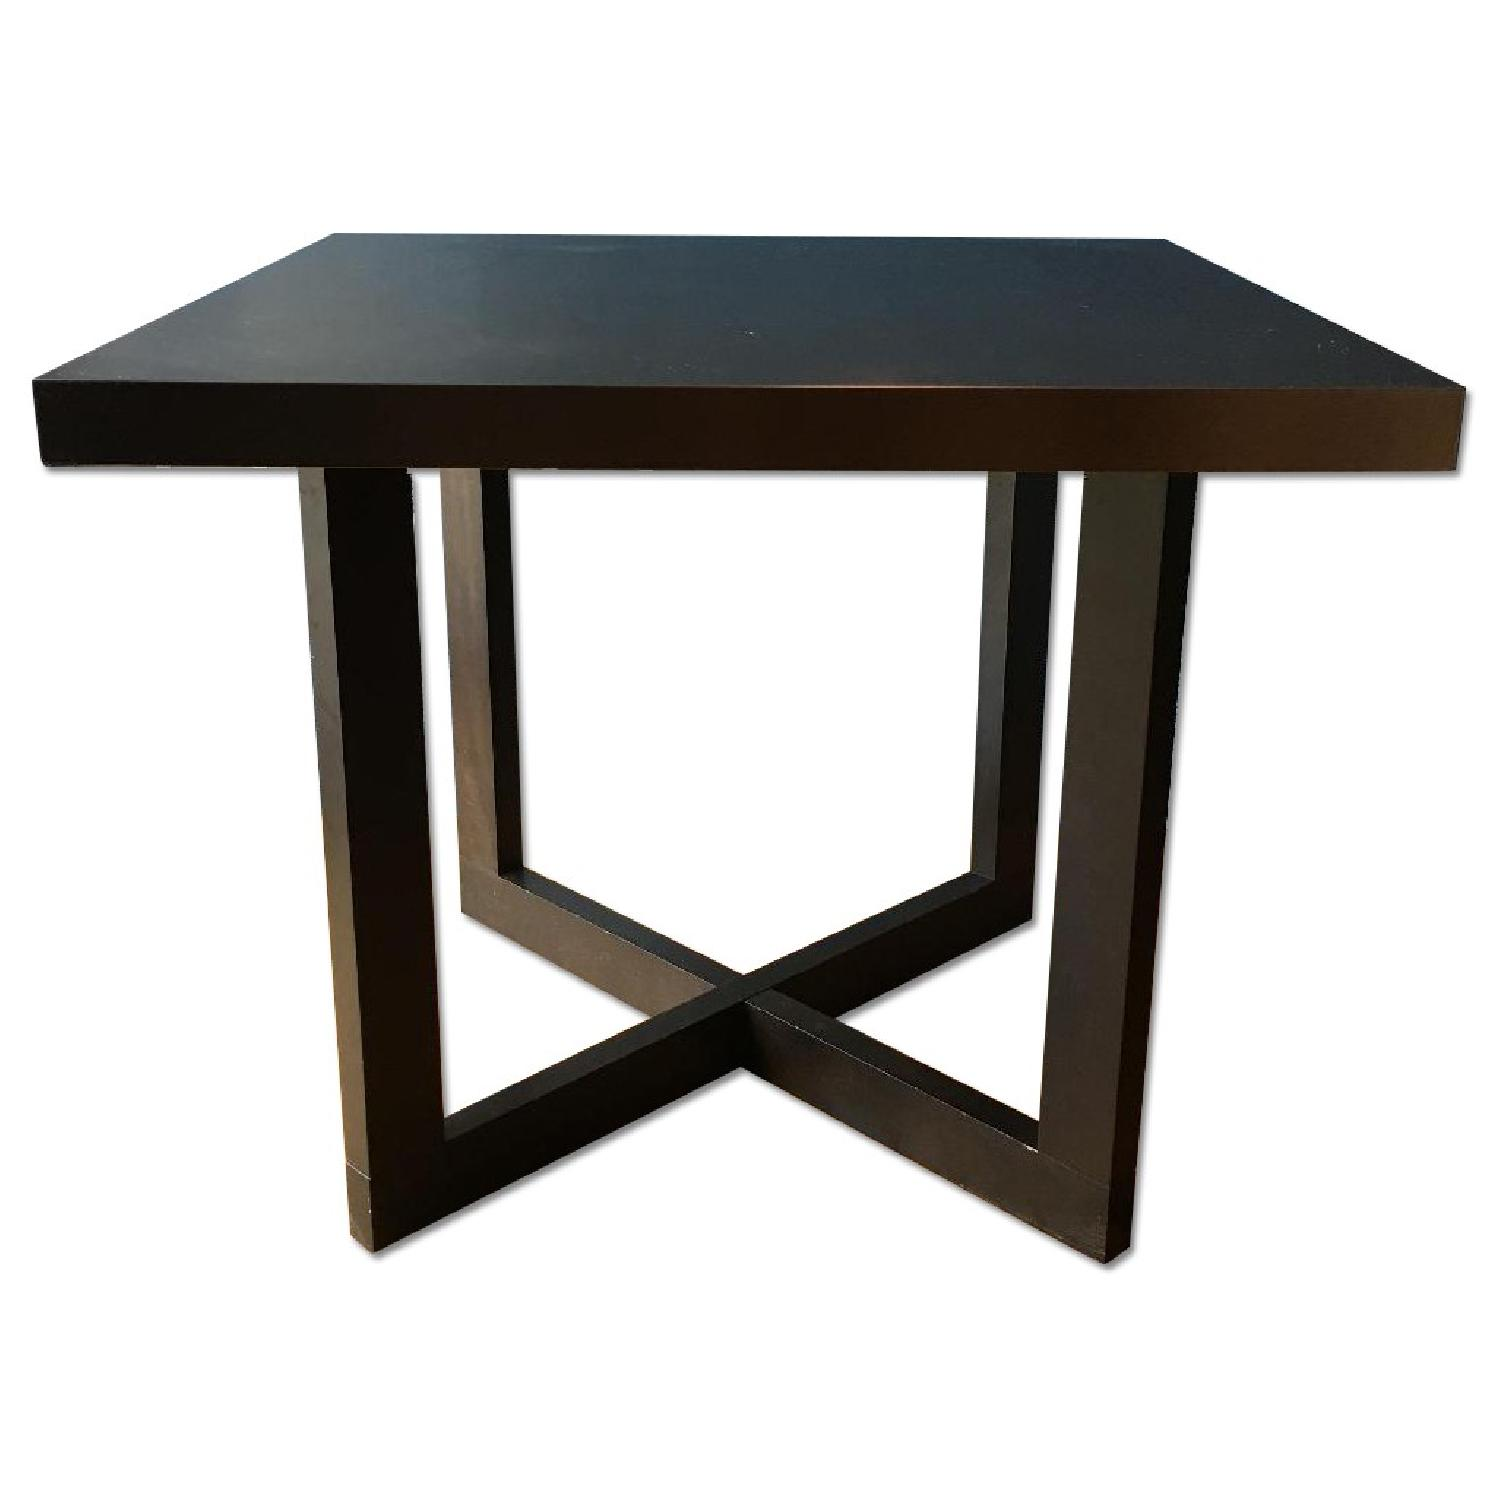 West Elm Solid Wood Table w/ Stainless Steel Top - image-3